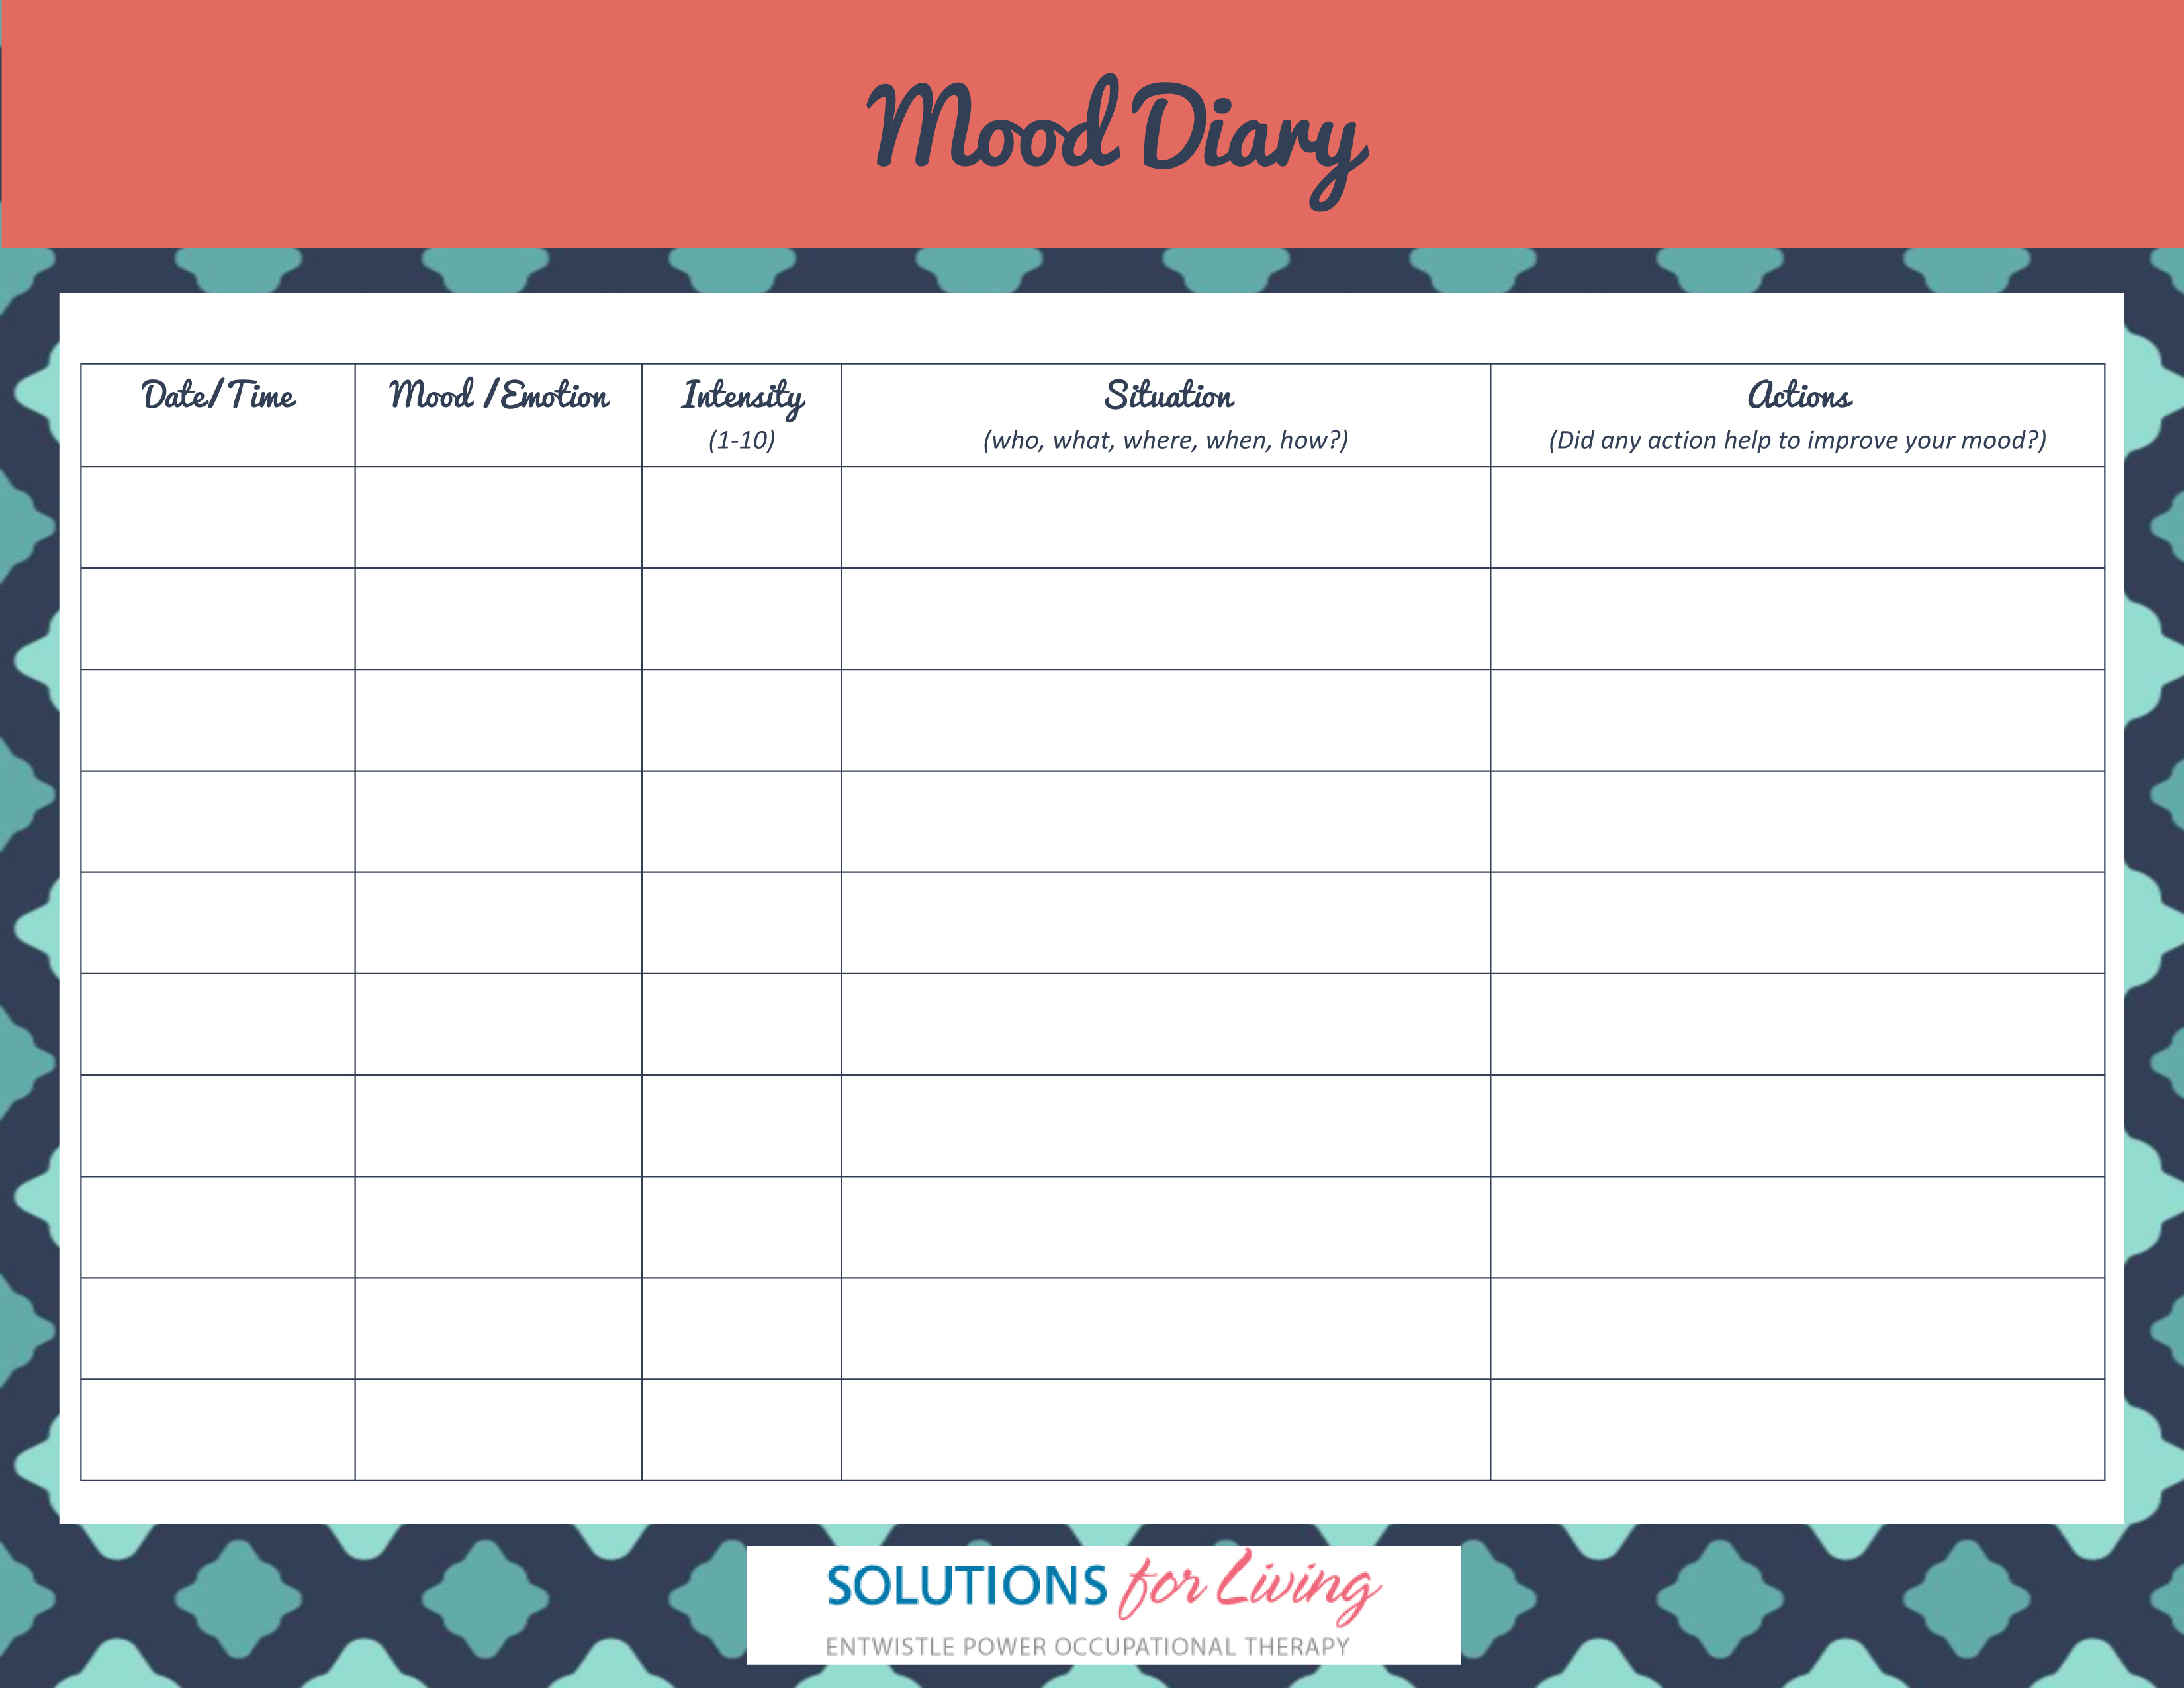 Mood Diary Solutions For Living